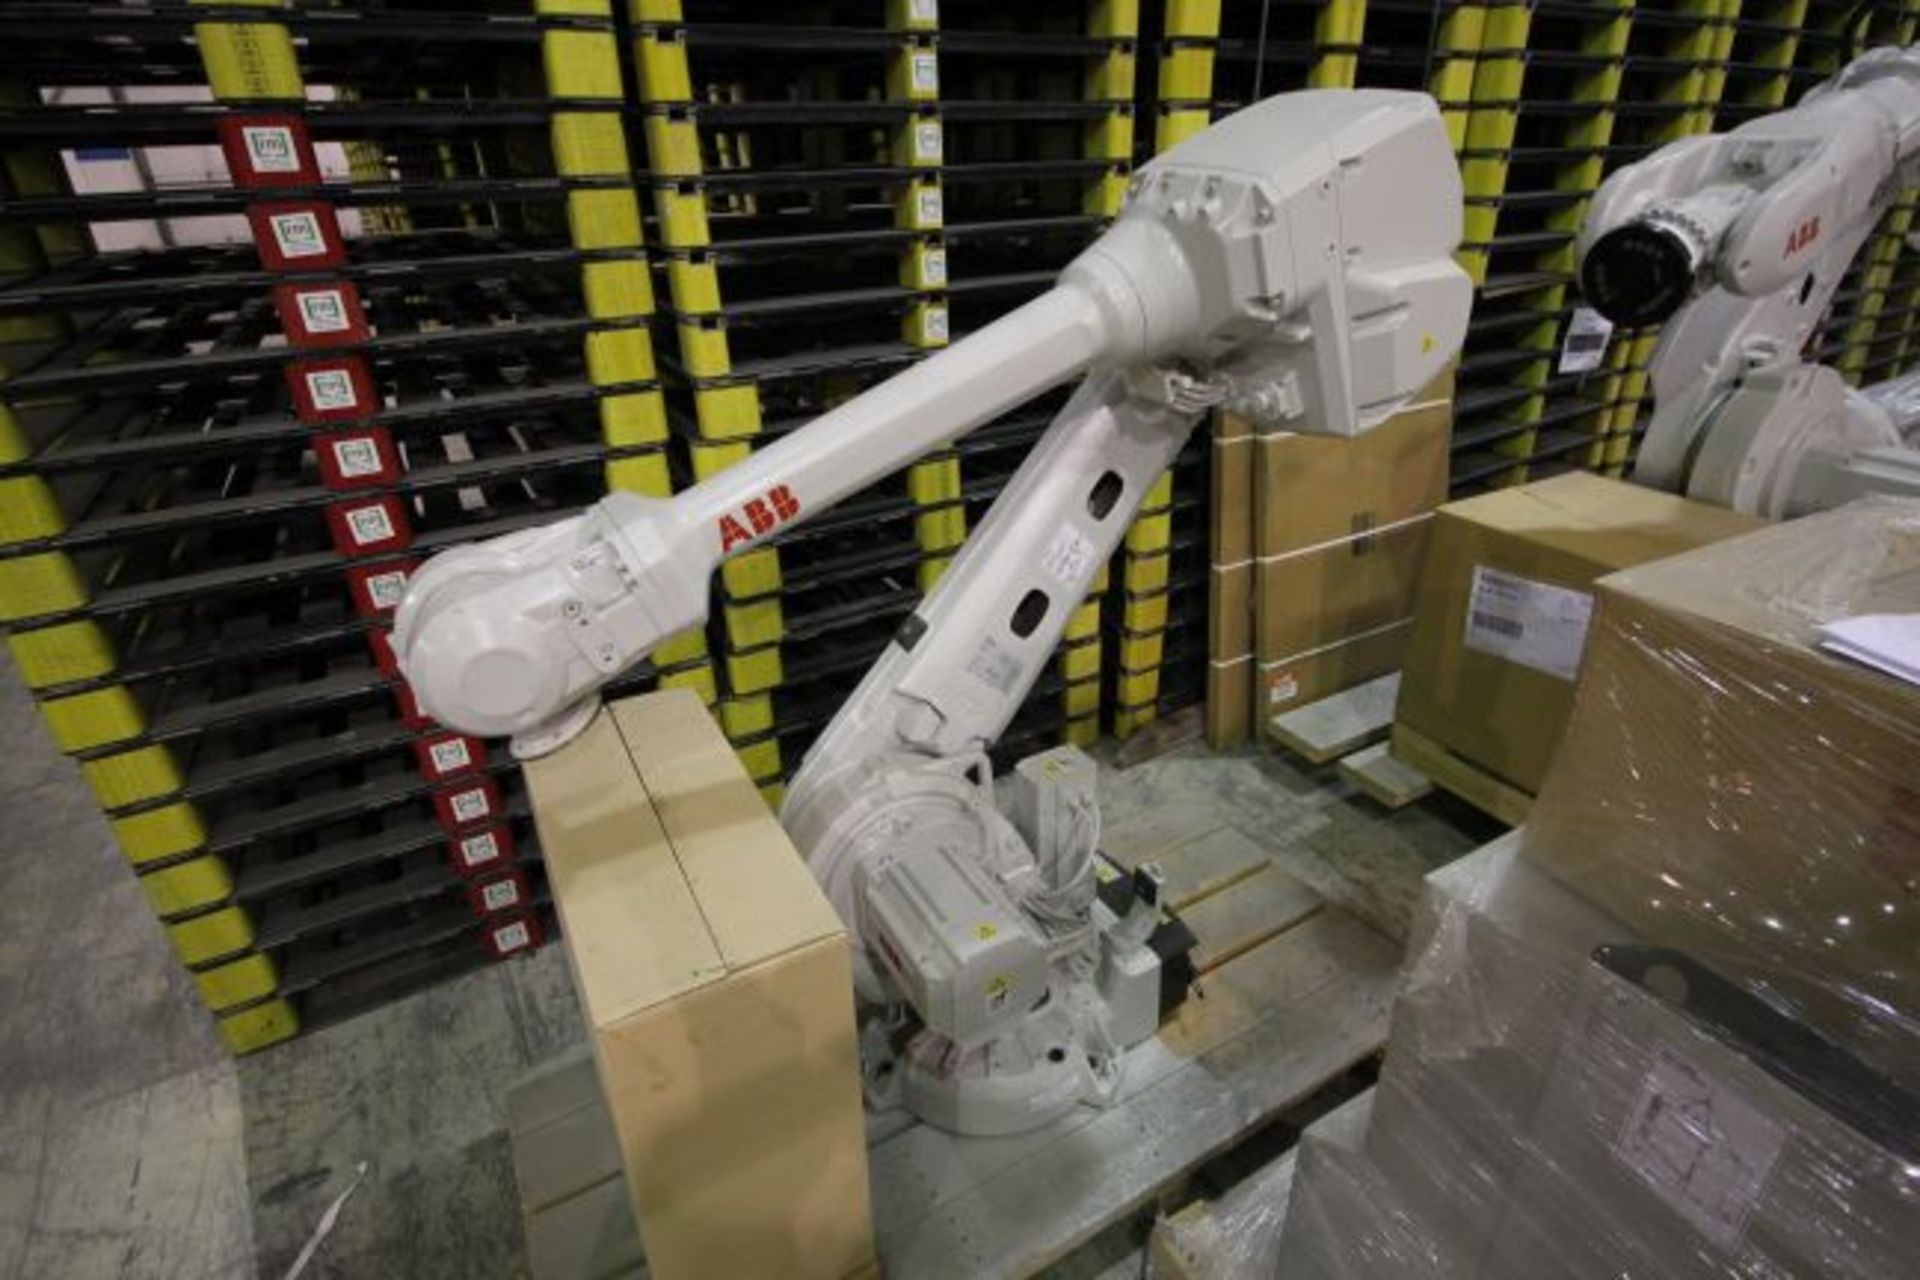 ABB ROBOT IRB 4600 2.55/40KG WITH IRC5 CONTROLS, YEAR 2015, 101896 TEACH PENDANT& CABLES - Image 2 of 11